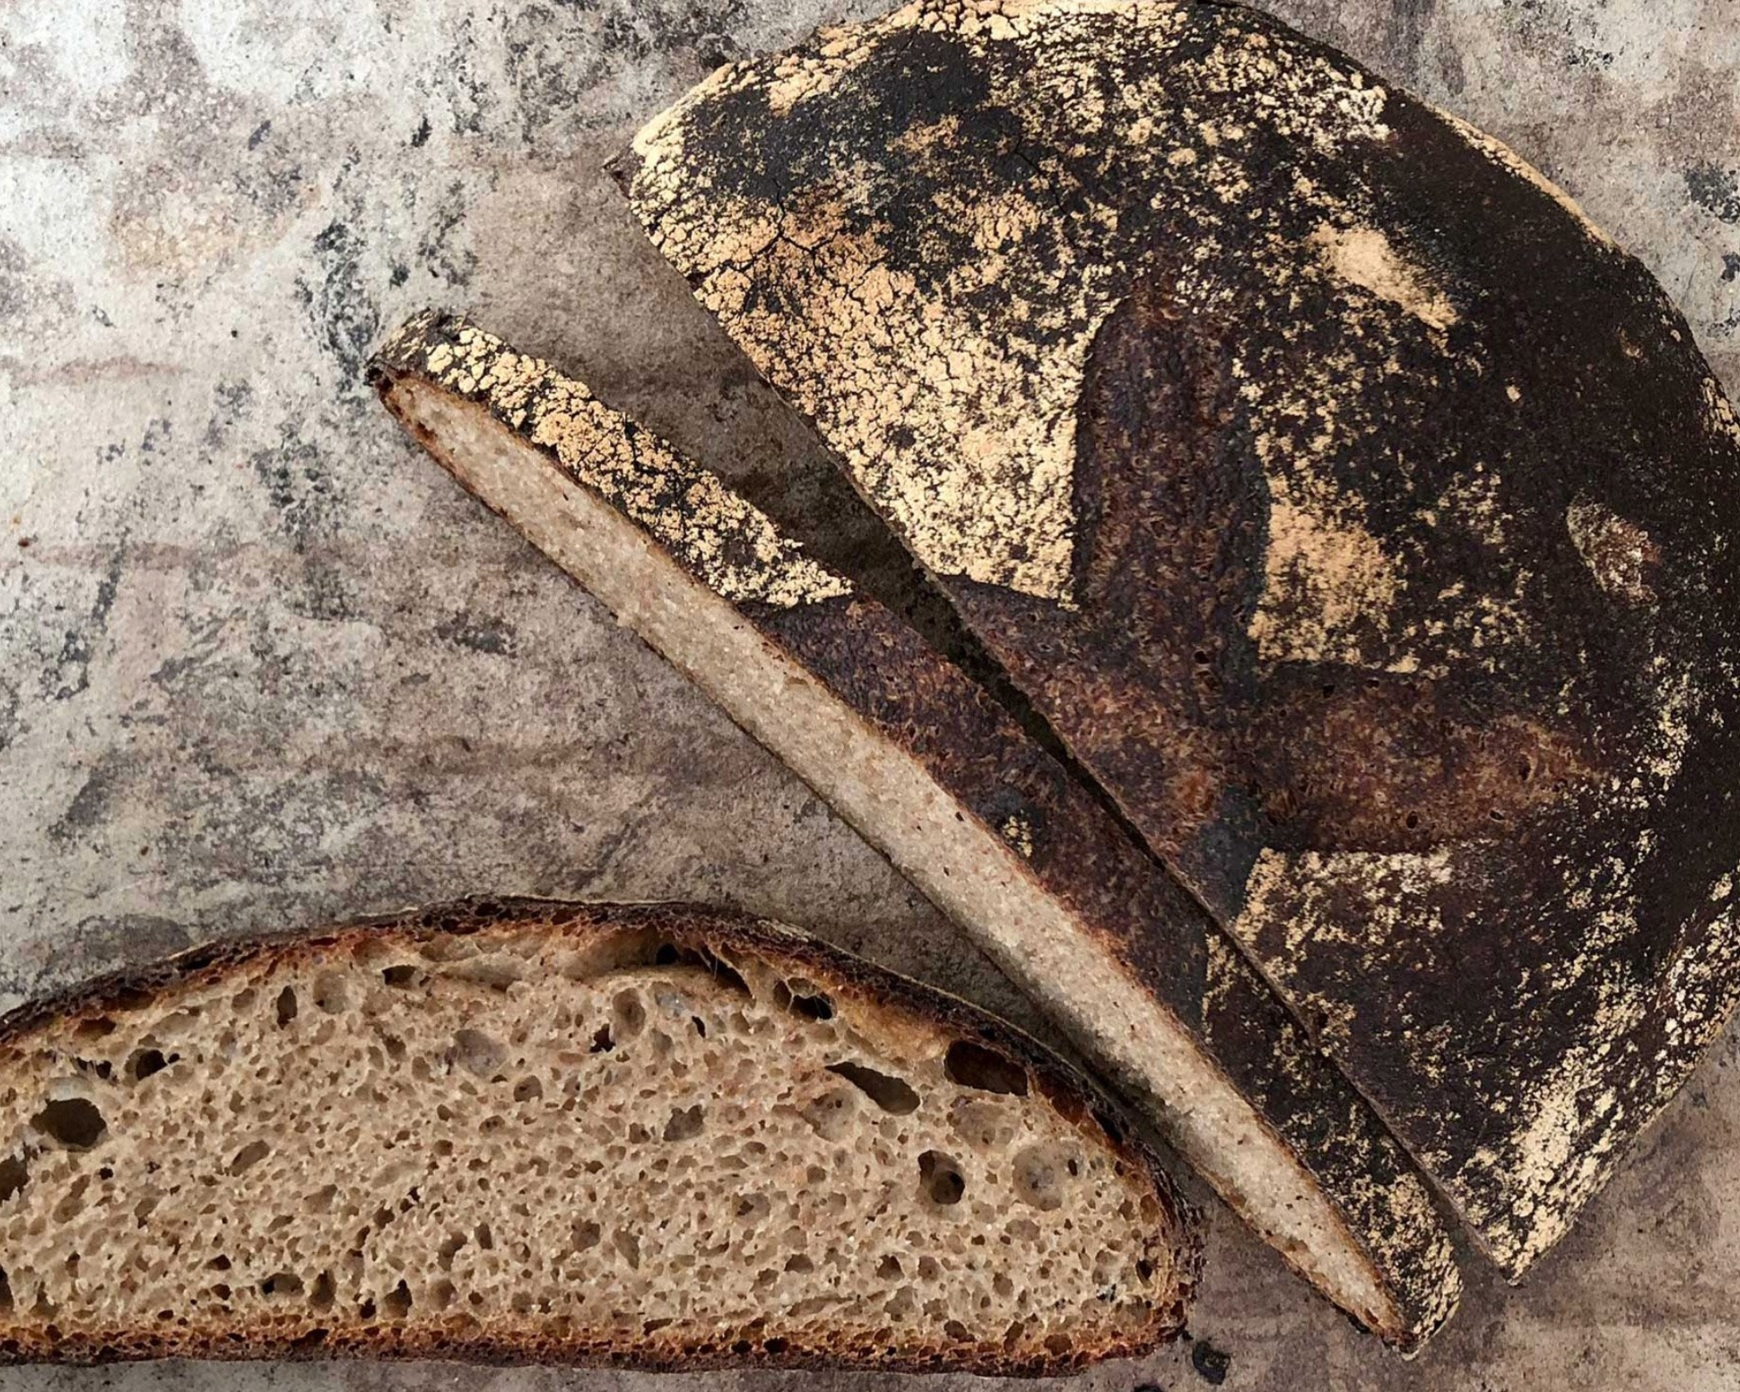 123 Dough - Sourdough bread bakery using freshly milled organic grains sourced from trusted farms78 Westchester Avenue, Pound Ridgelouis@123dough.com☎︎ 914-764-8111